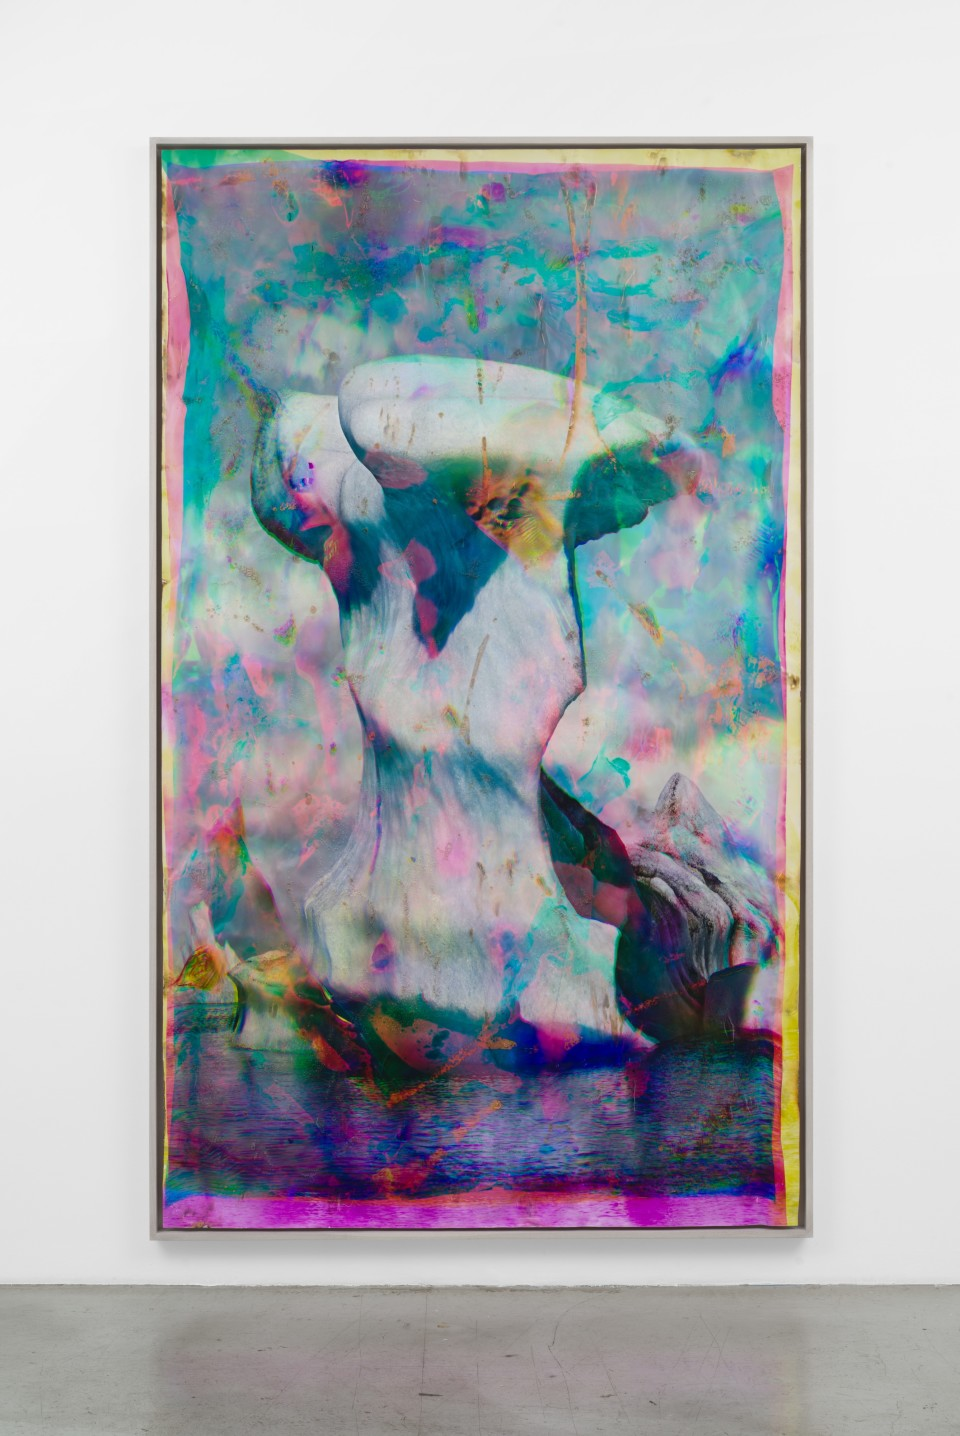 Artwork: Matthew Brandt  Vatnajökull CMY1, 2018-2020  signed, titled and dated verso  heated chromogenic print, with acrylic varnish and Aqua-Resin support  120 x 72 inches (304.8 x 182.9 cm)